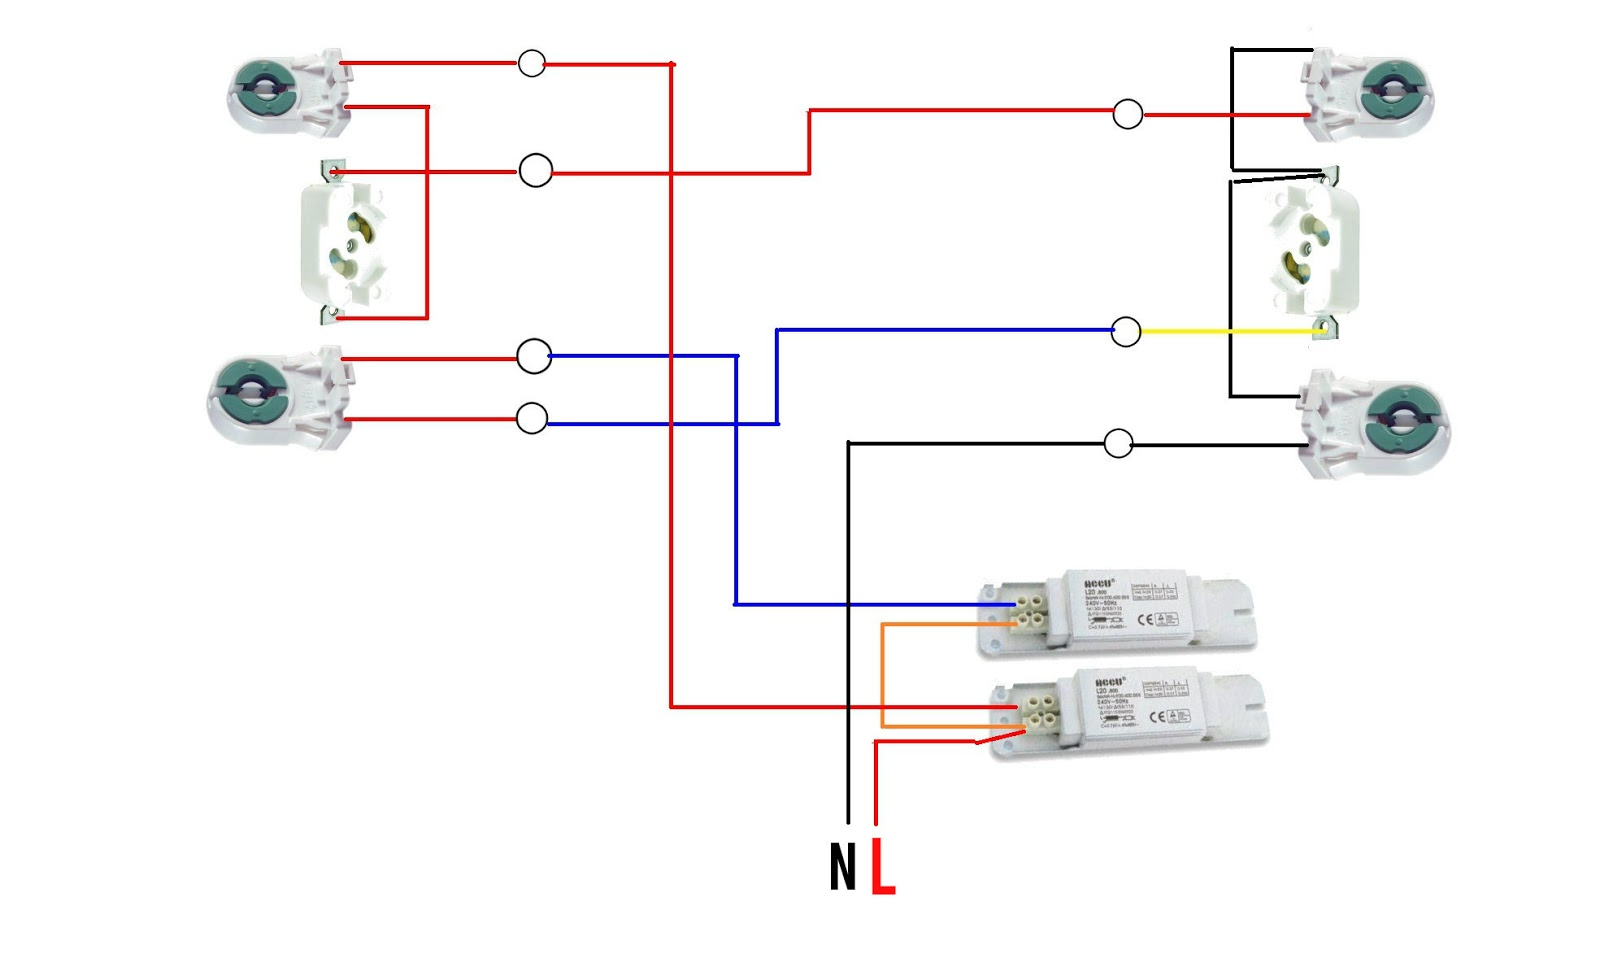 medium resolution of the world through electricity double fluorescent light fluorescent light starter wiring diagram fluorescent light wiring diagram